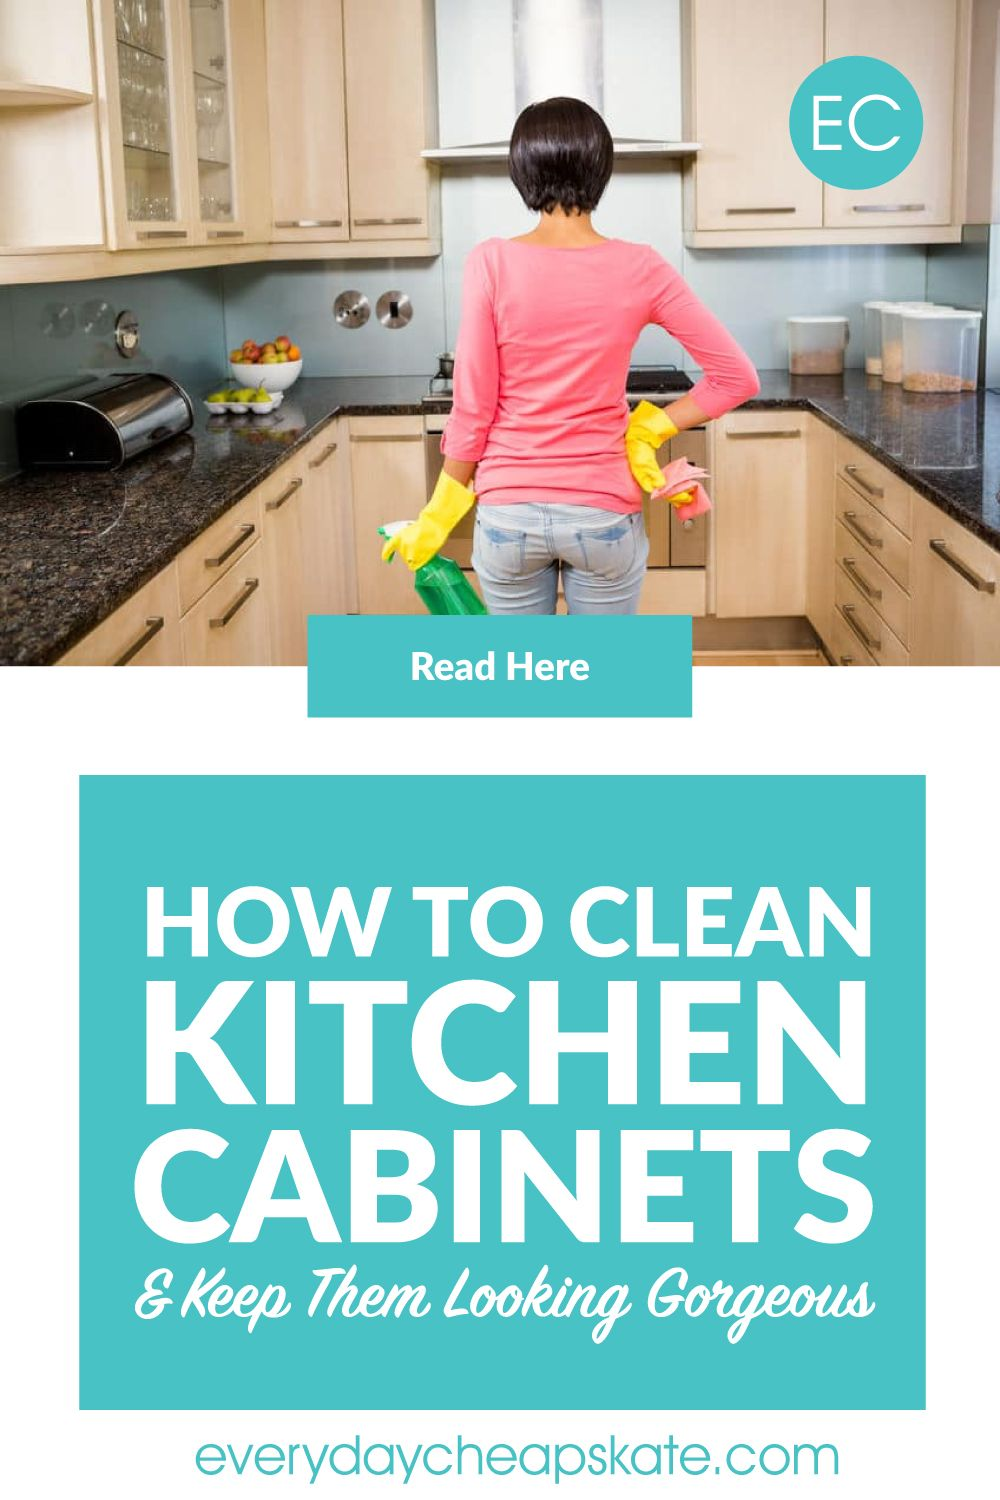 How To Clean Kitchen Cabinets And Keep Them Looking Gorgeous In 2020 Clean Kitchen Cabinets Clean Kitchen Cleaning Cabinets